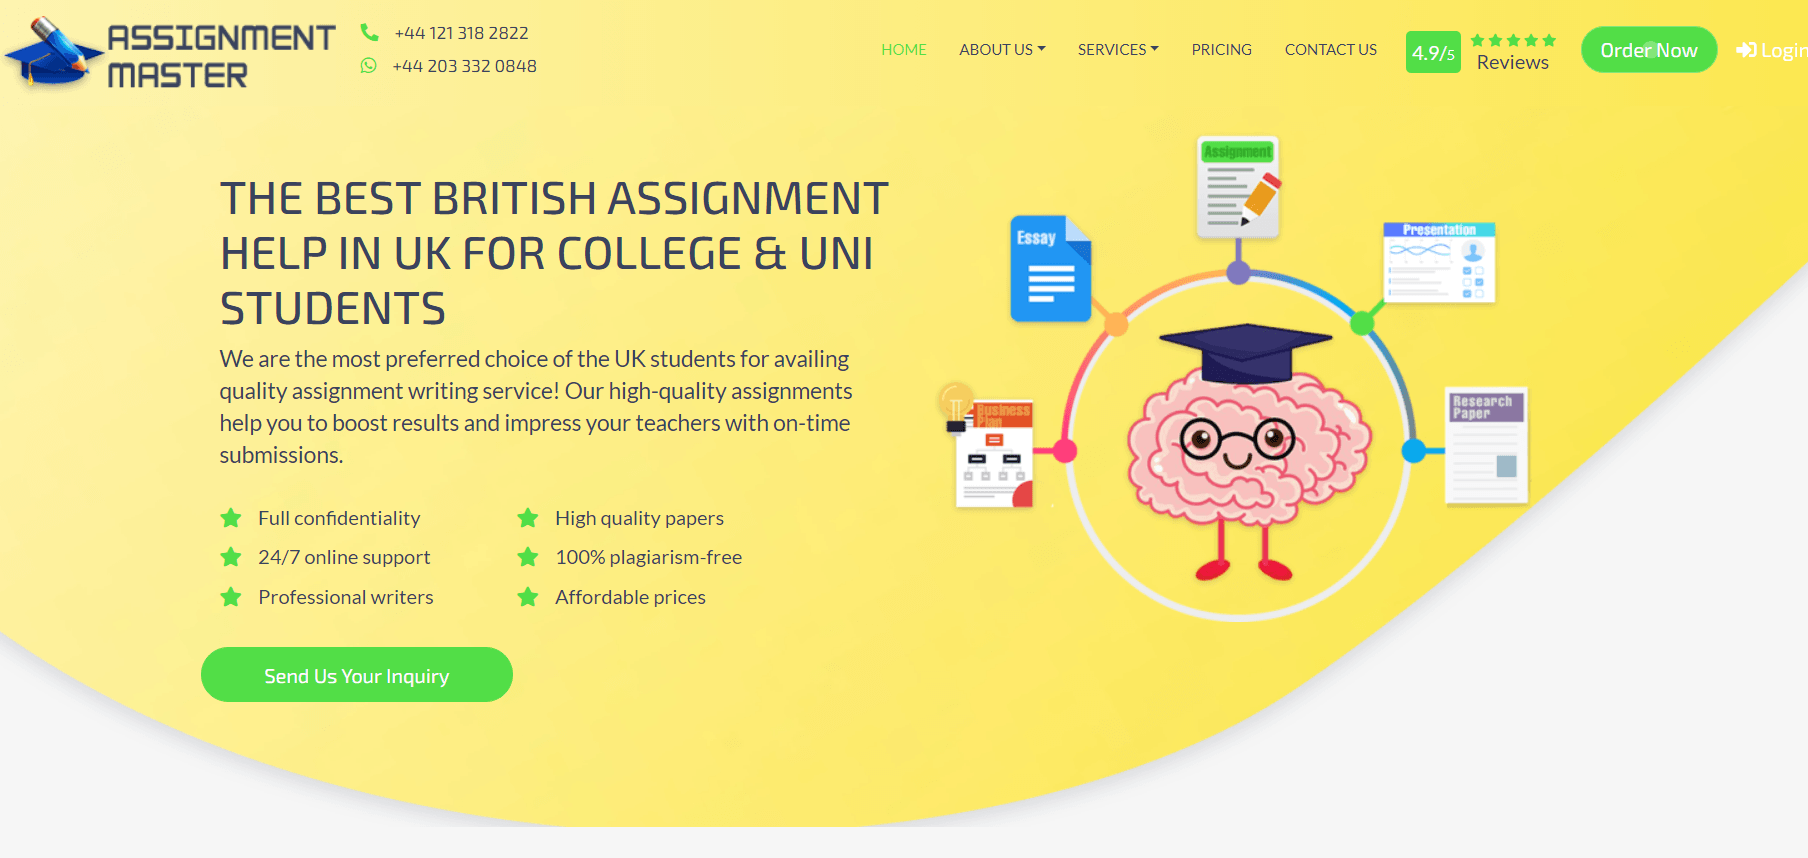 assignmentmaster.co.uk review